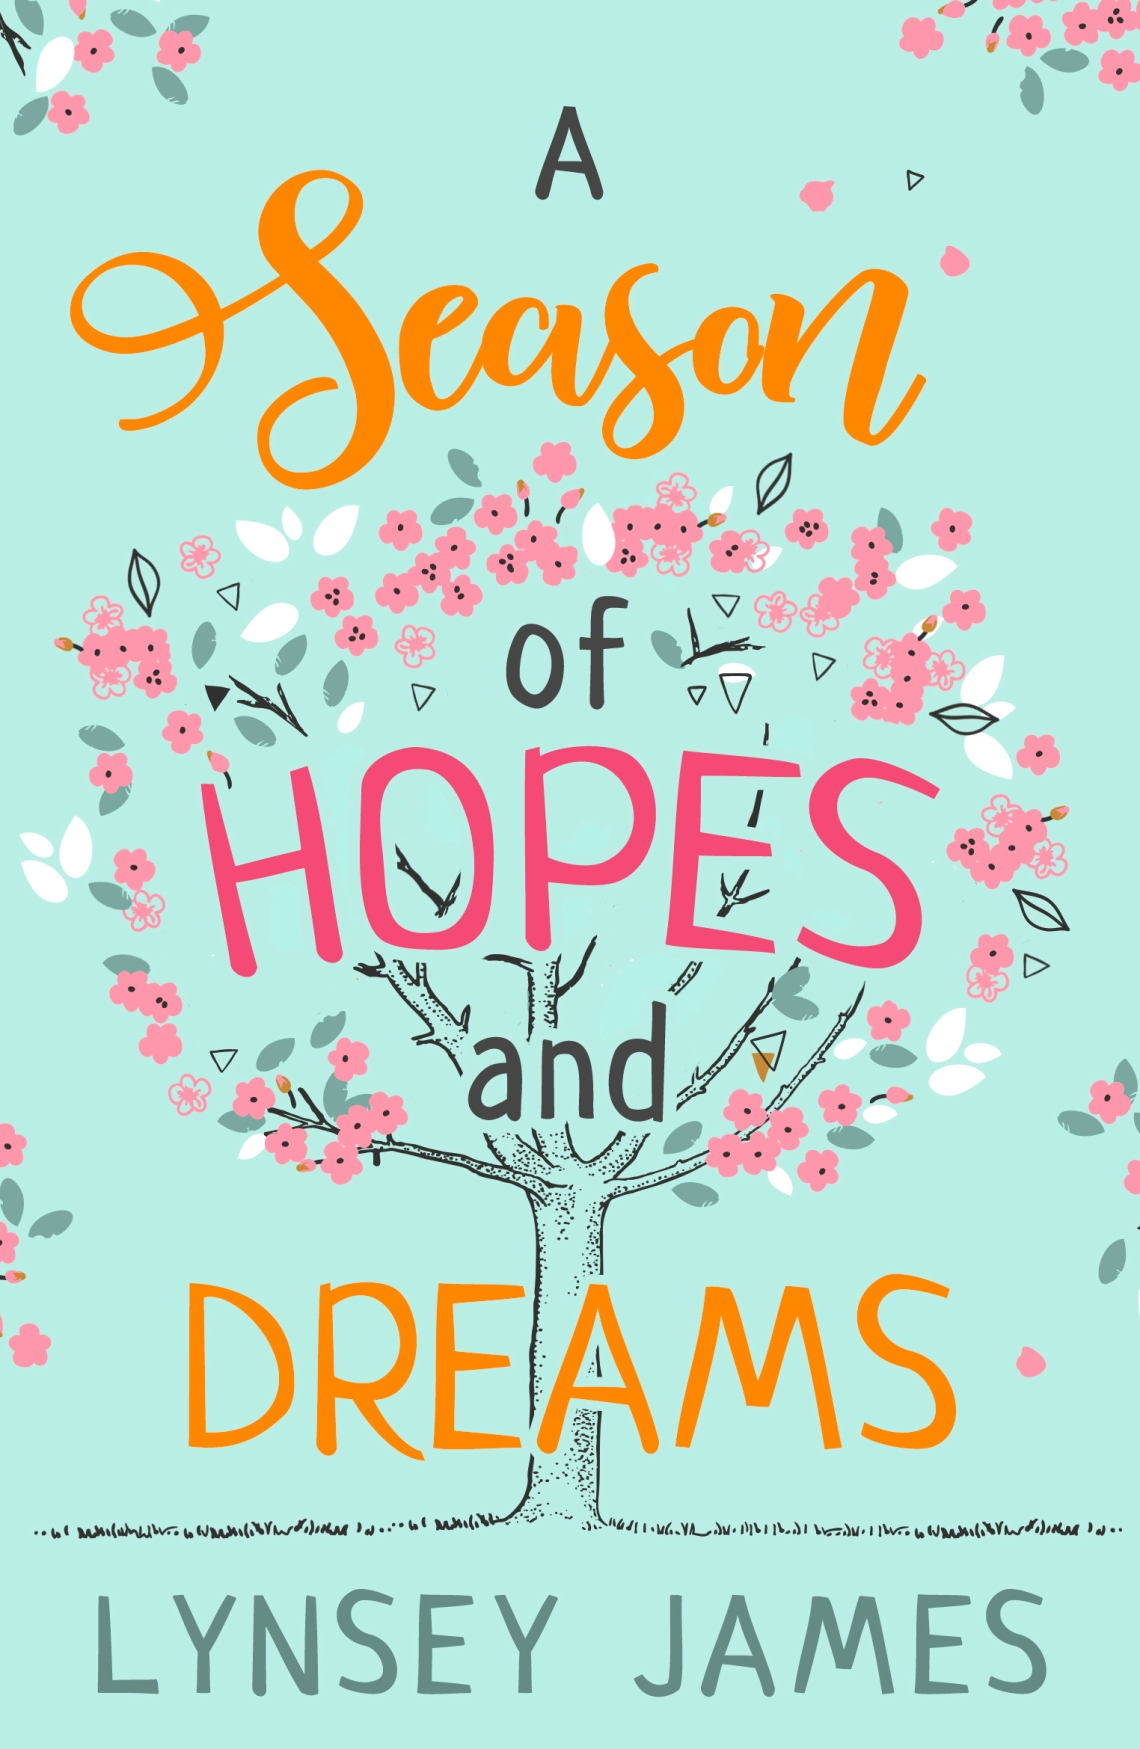 Book Review: A Season of Hopes and Dreams by Lynsey James